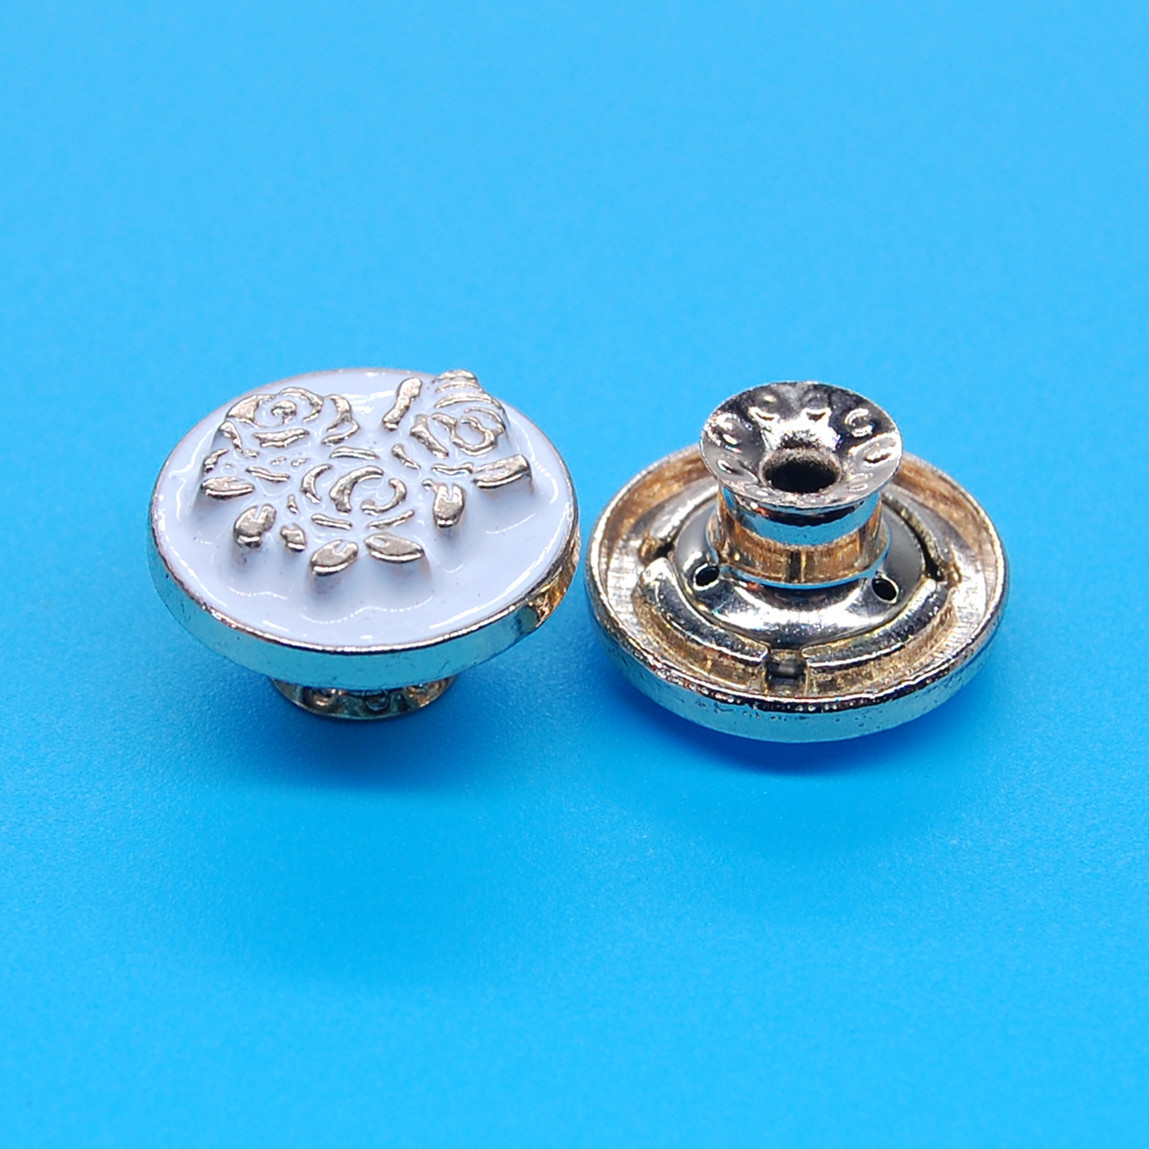 Chinese supplier jeans jacket alloy shank metal buttons